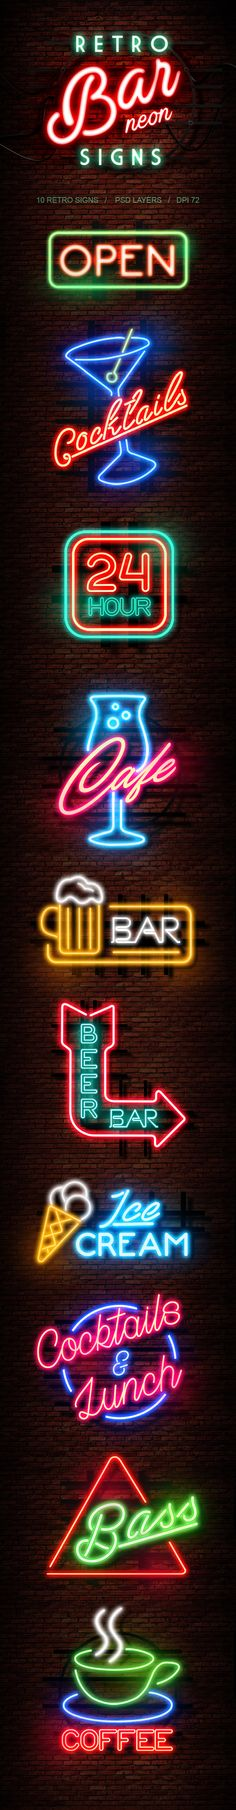 Retro Bar Neon Signs — Photoshop ASL #psd #typography • Download ➝ https://graphicriver.net/item/retro-bar-neon-signs/19739676?ref=pxcr